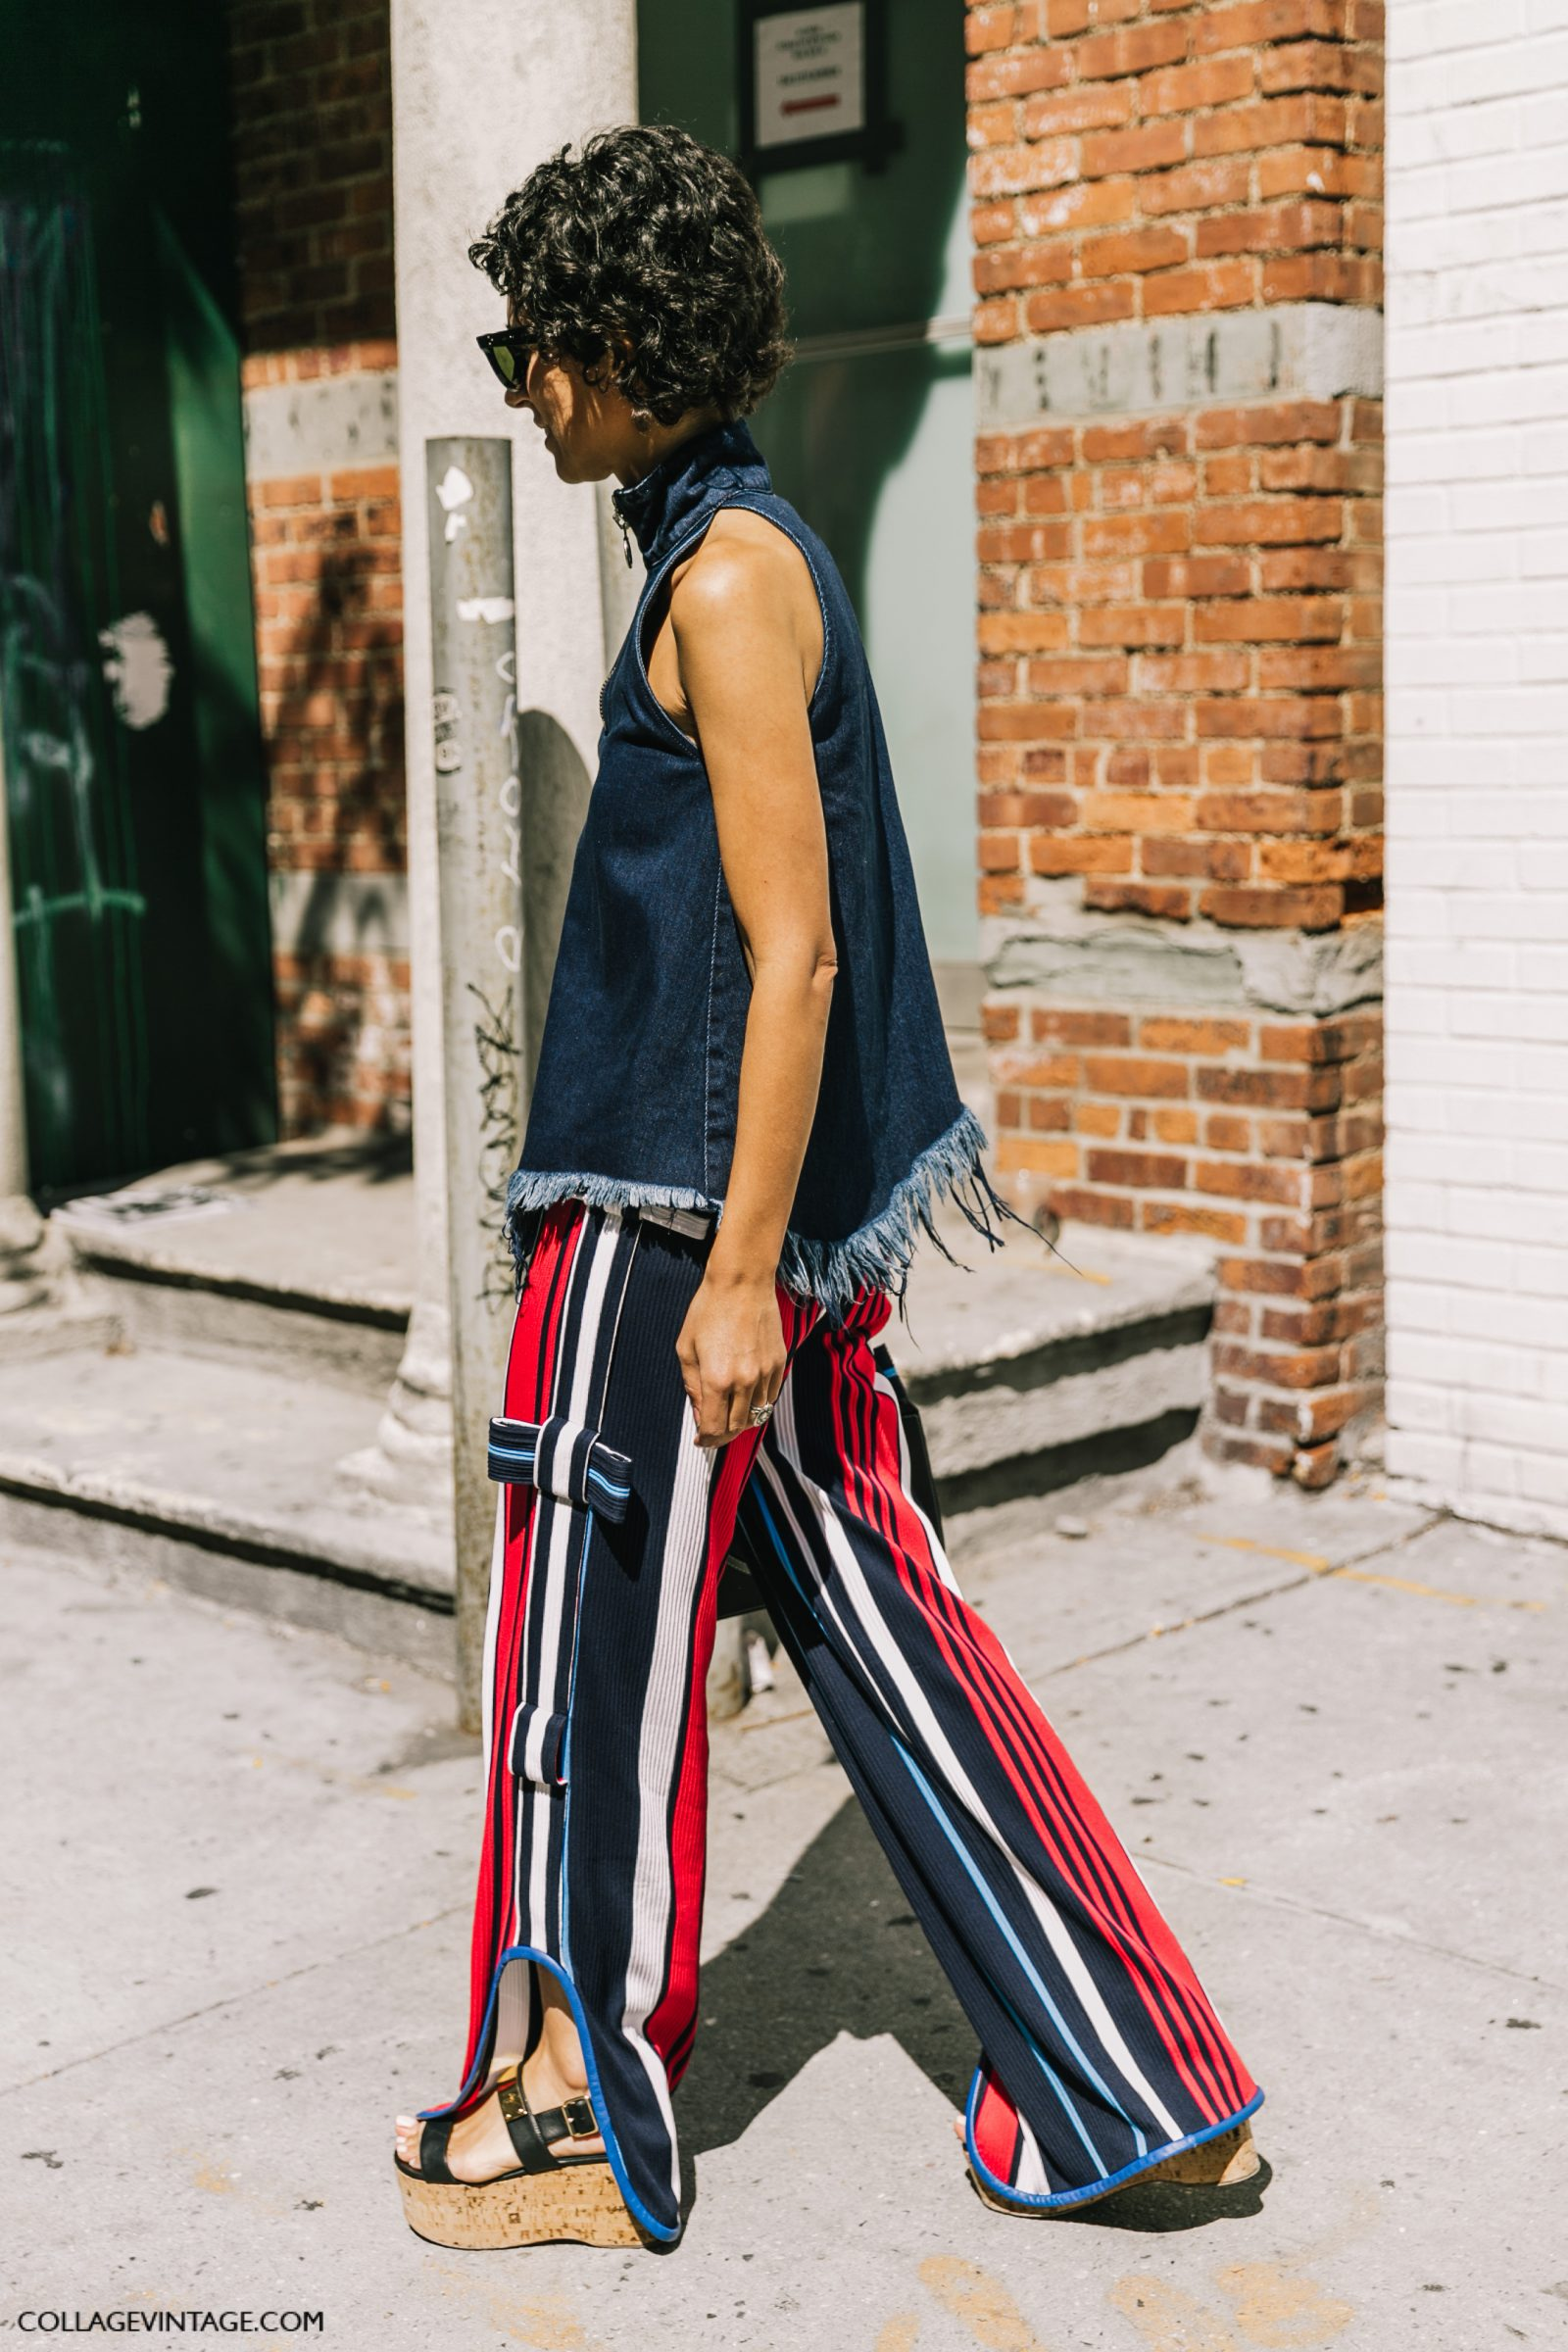 nyfw-new_york_fashion_week_ss17-street_style-outfits-collage_vintage-vintage-mansur_gavriel-rodarte-coach-74